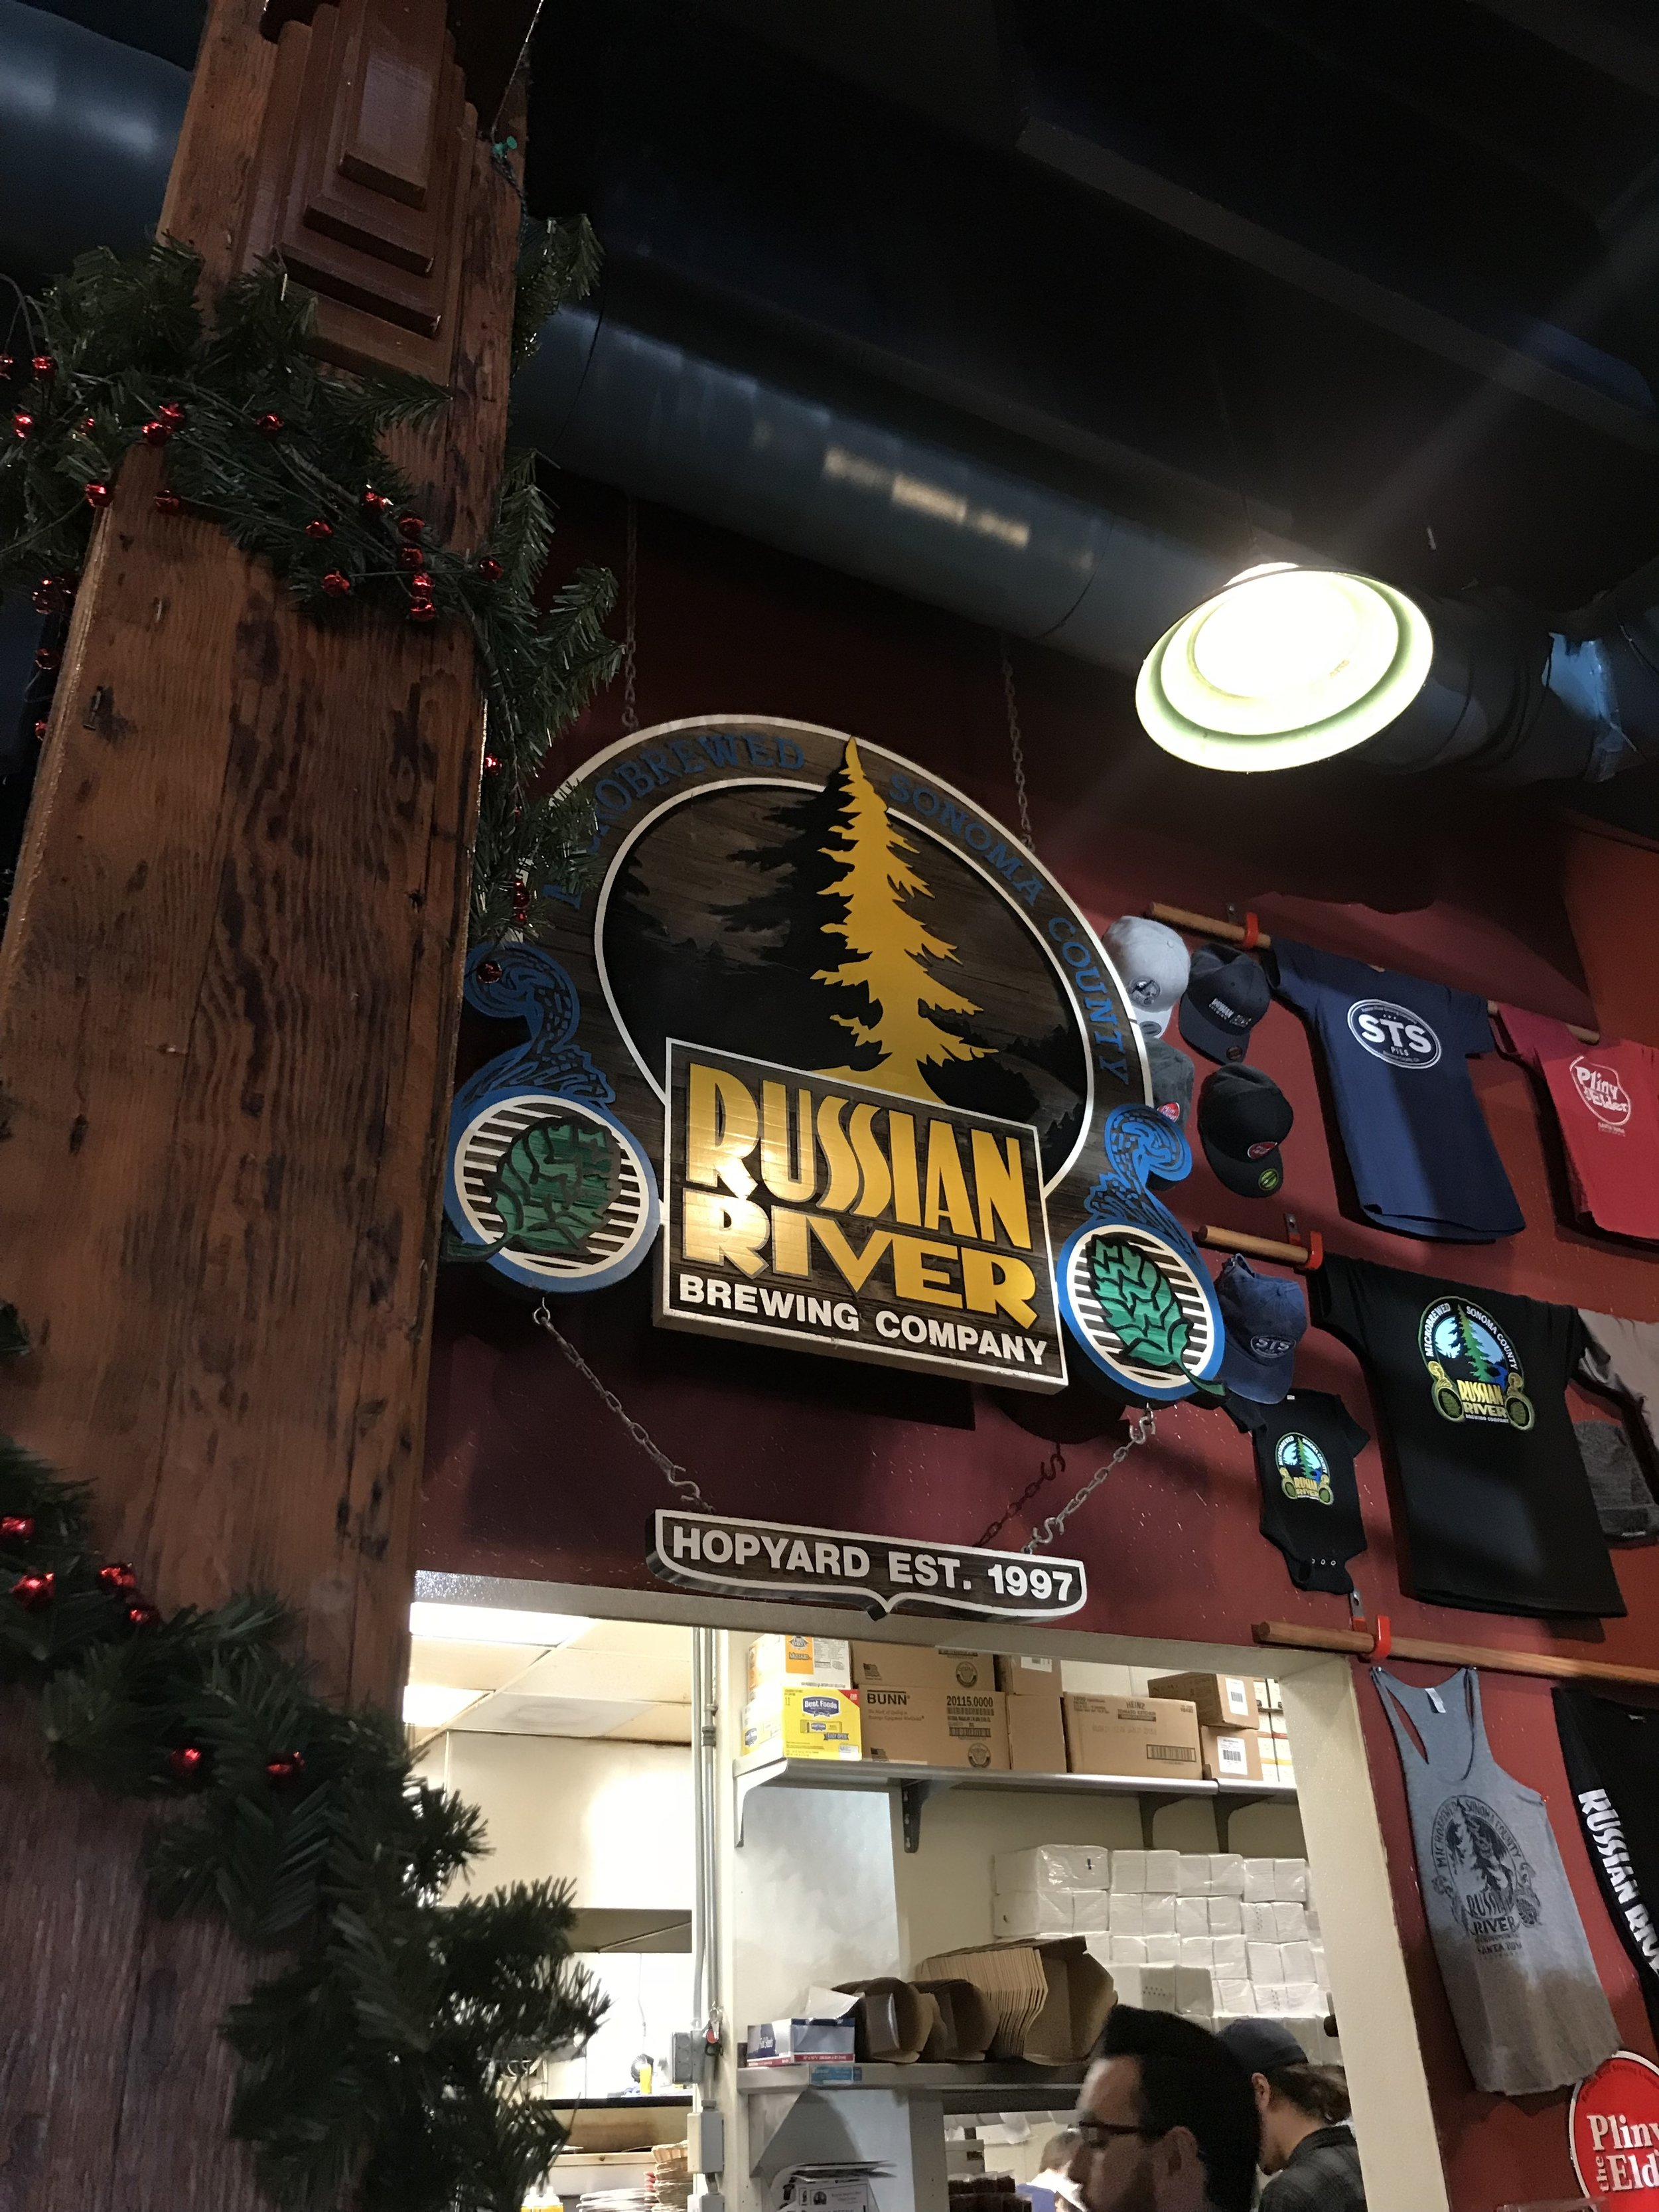 Russian River Brewery Brew pub